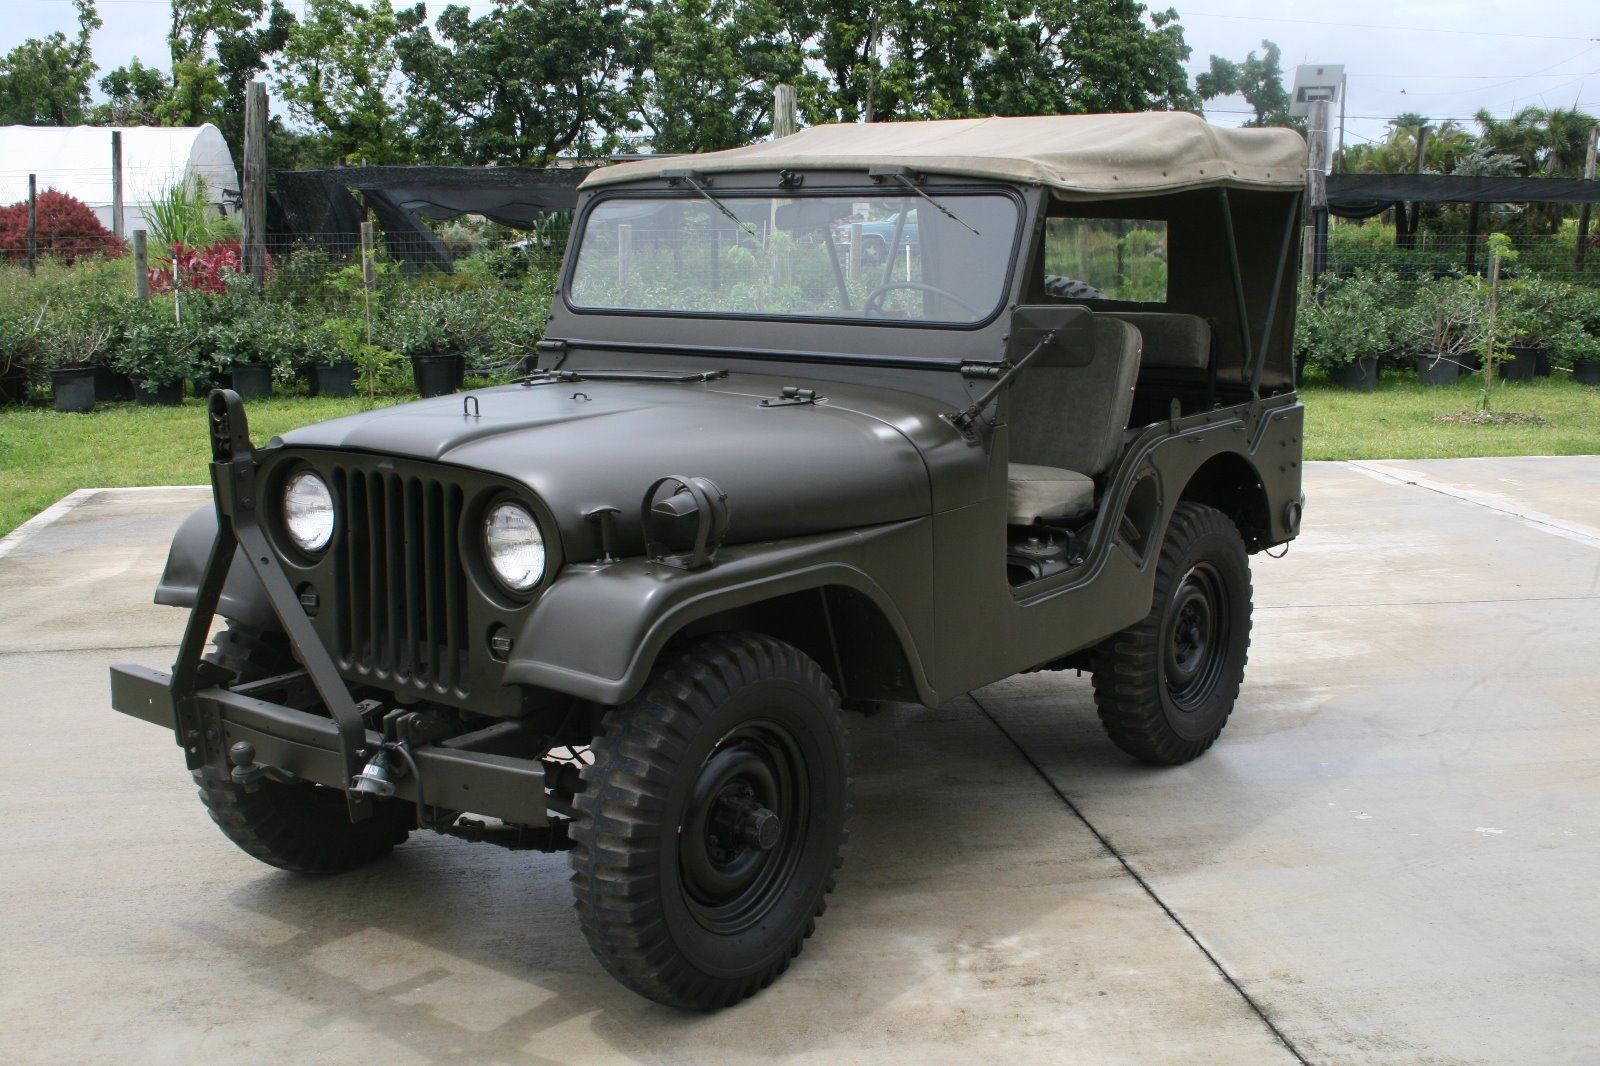 medium resolution of movie car 1953 willys jeep m38a1 military